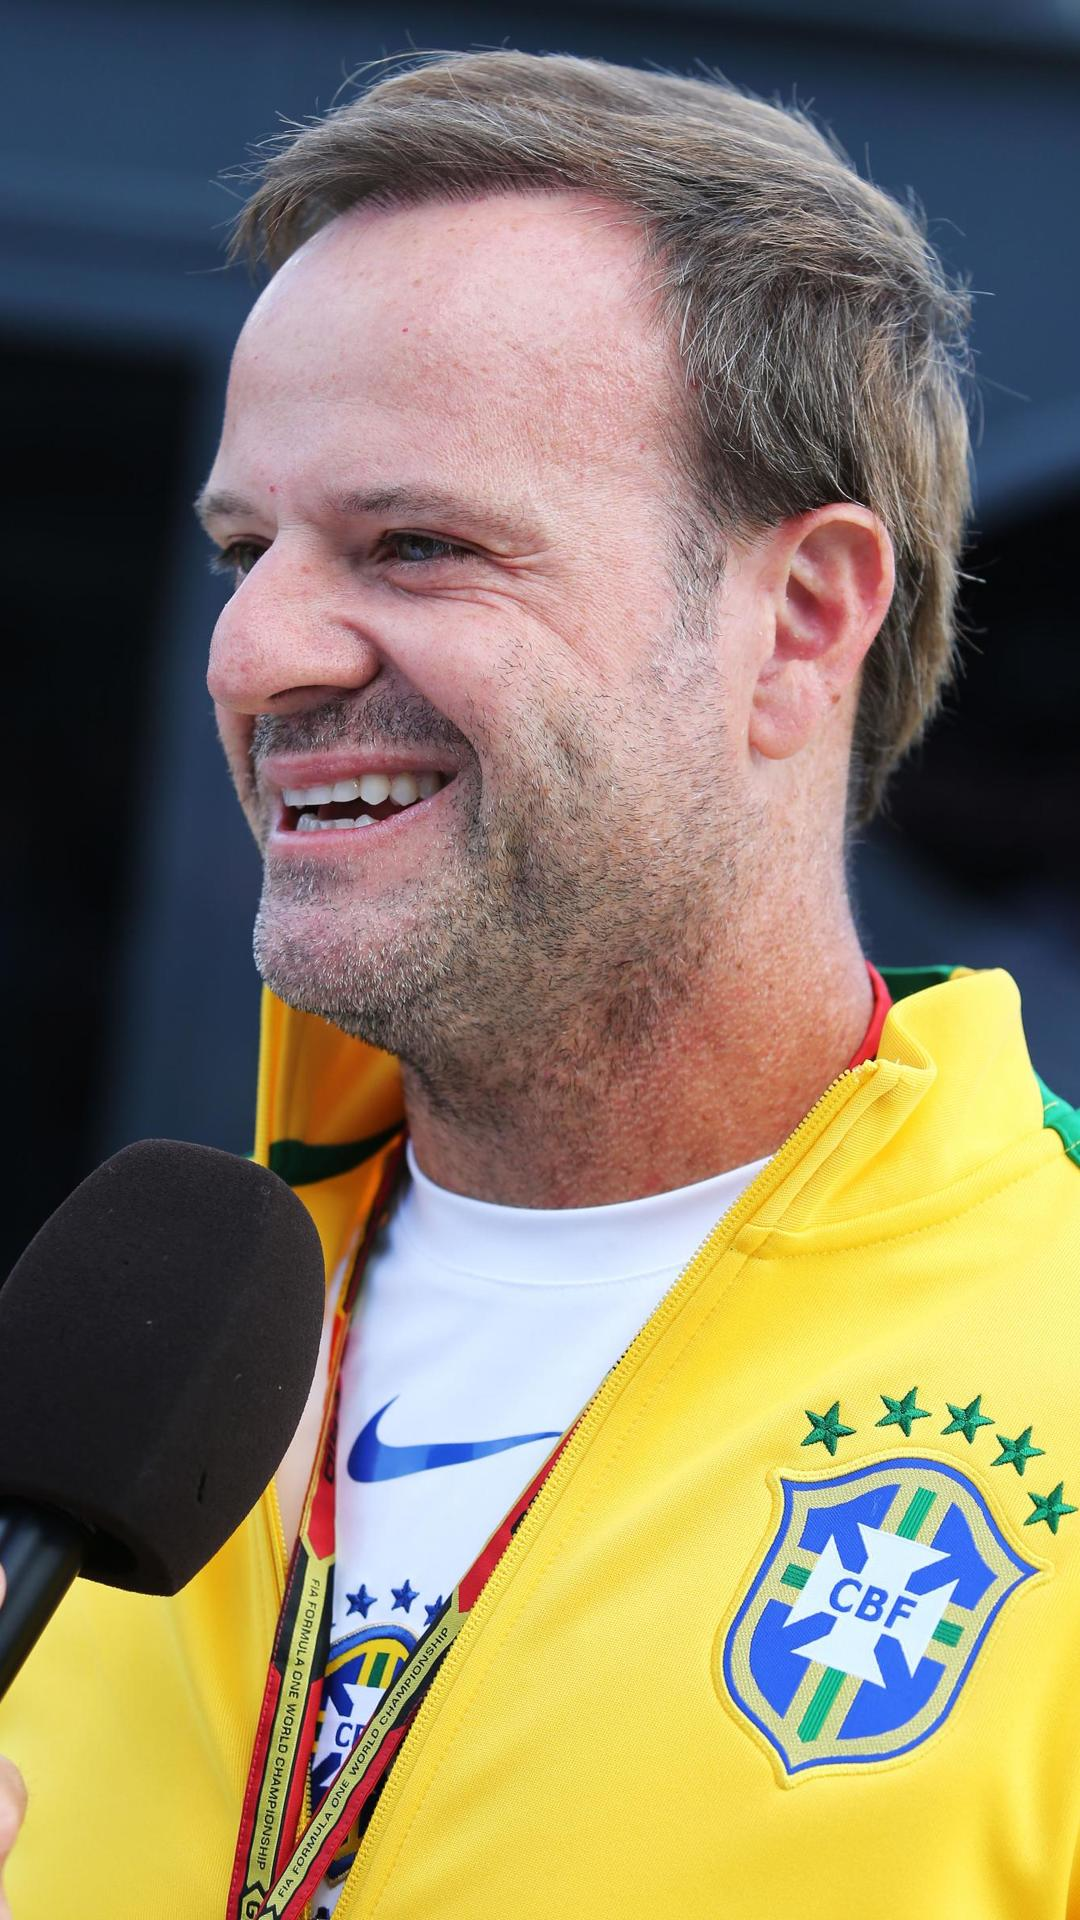 Schu should only be six-time champ - Barrichello